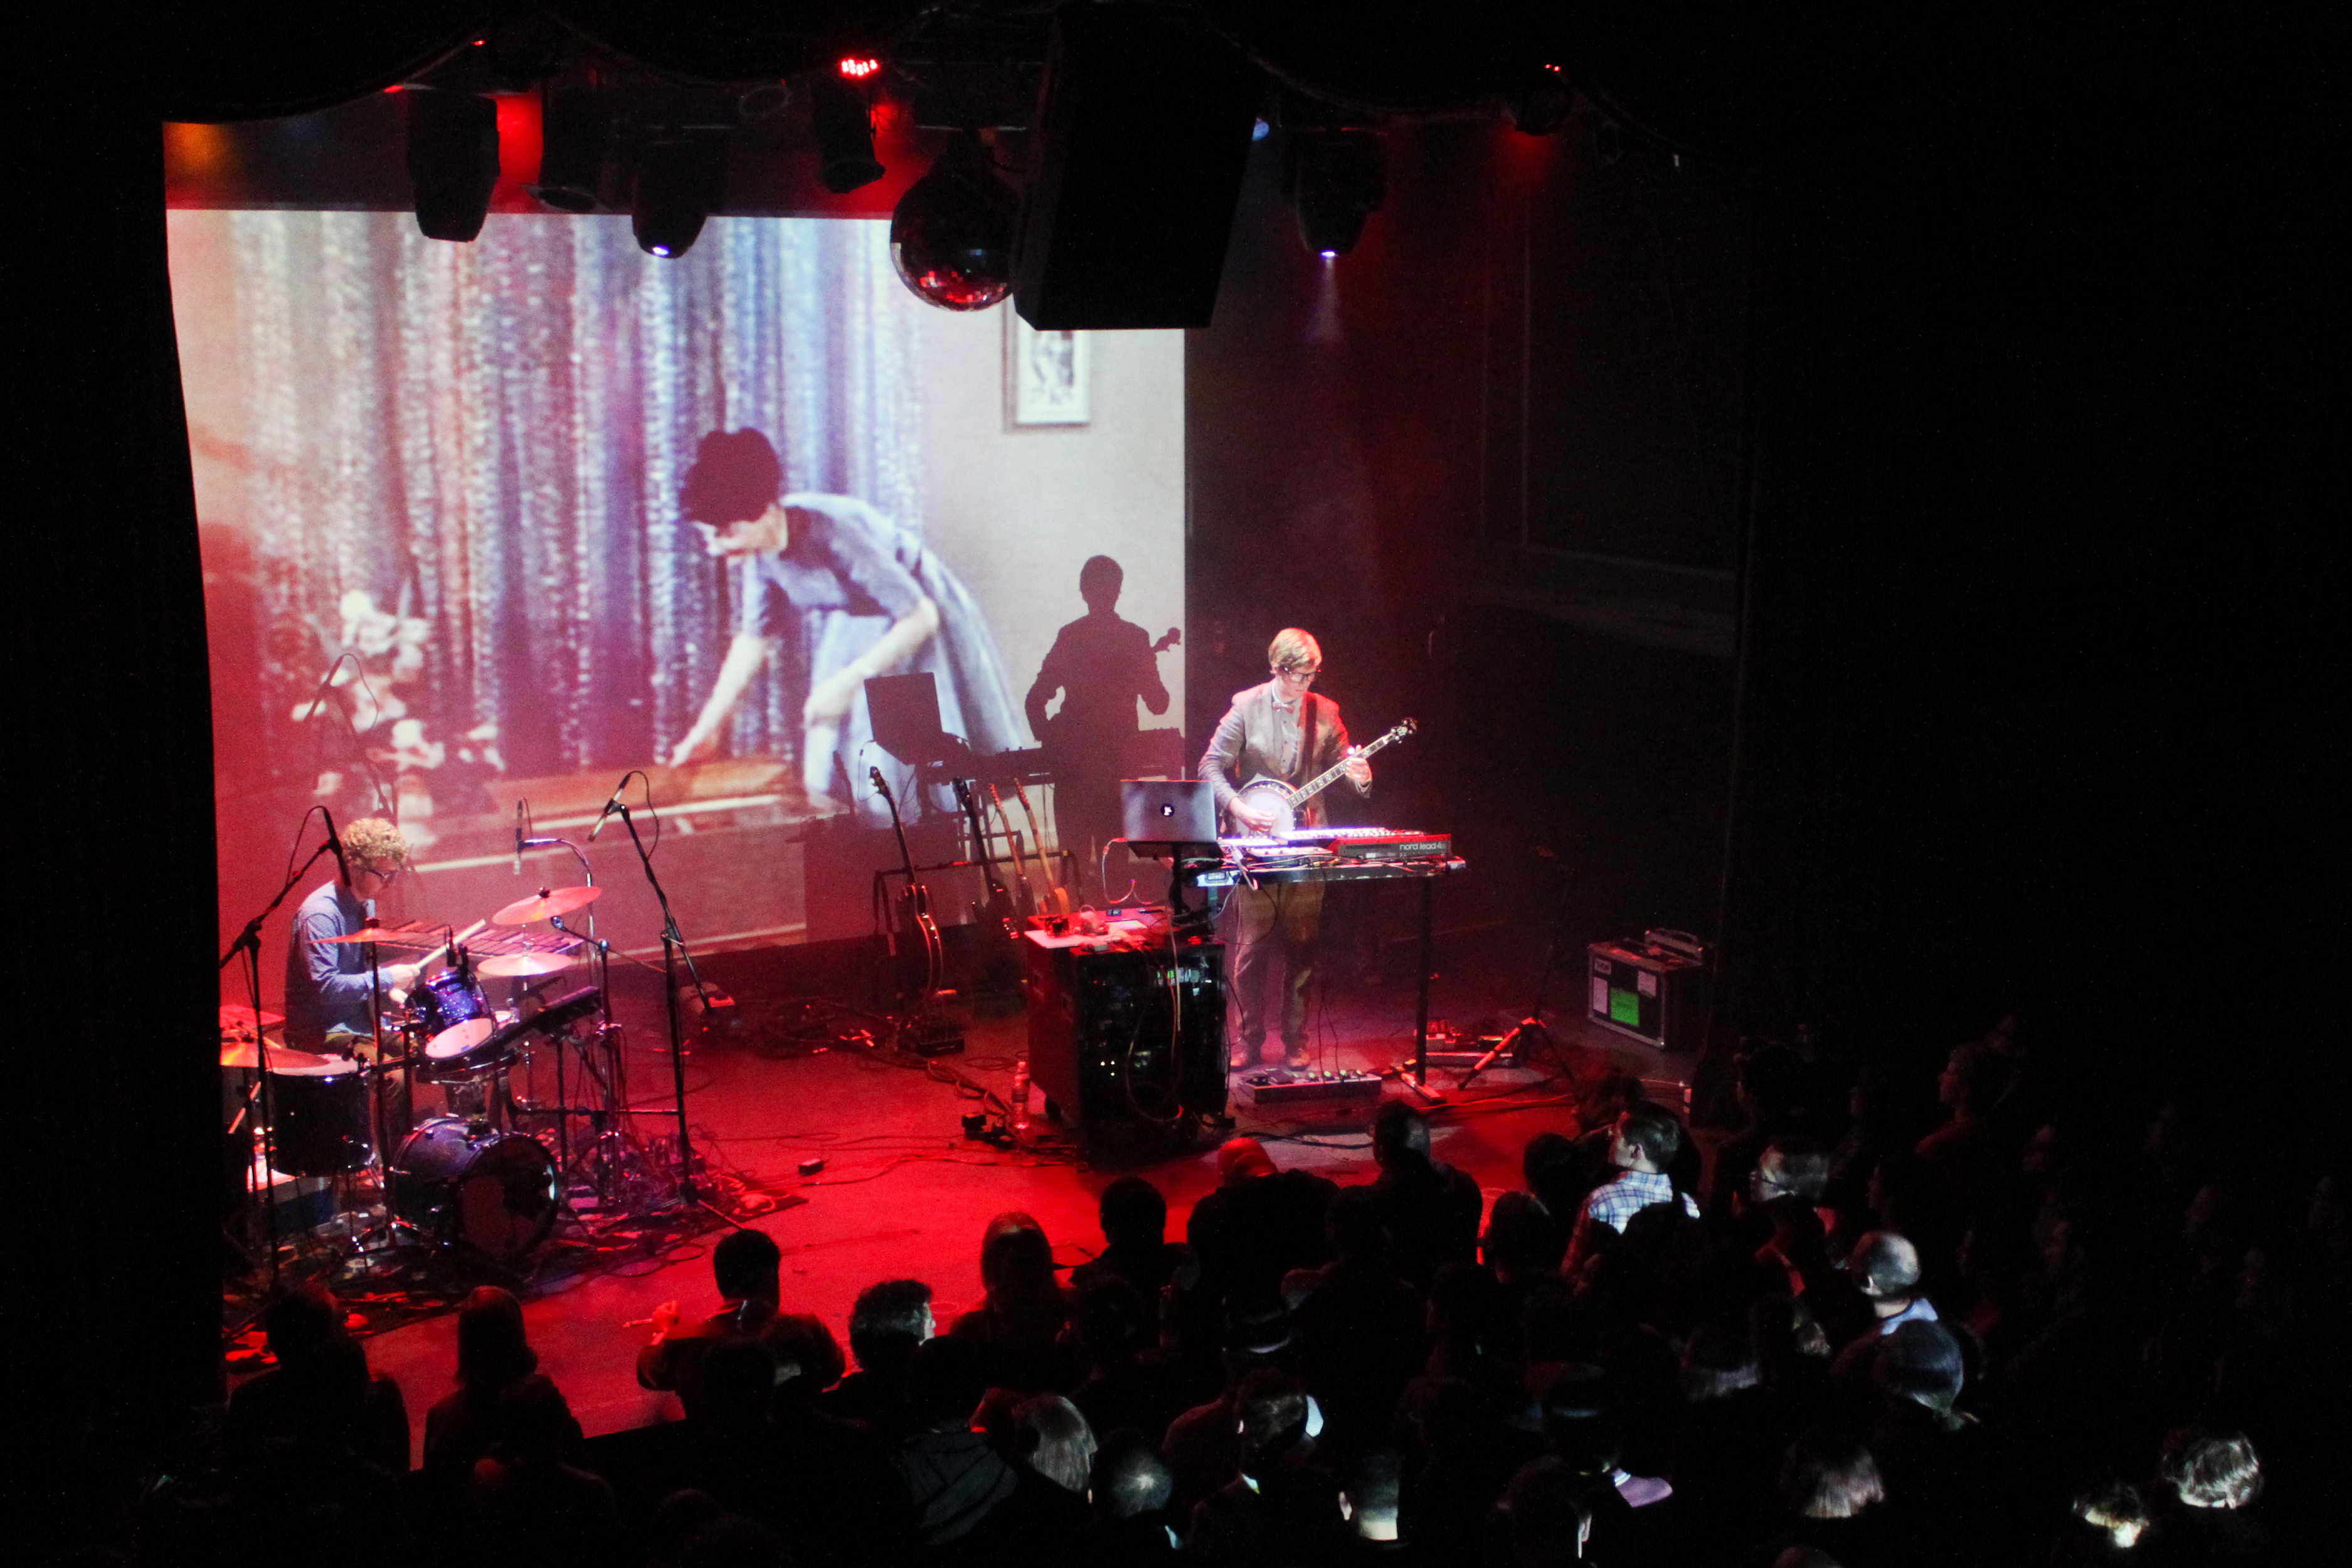 LIVE REVIEW: Public Service Broadcasting @ Bowery Ballroom